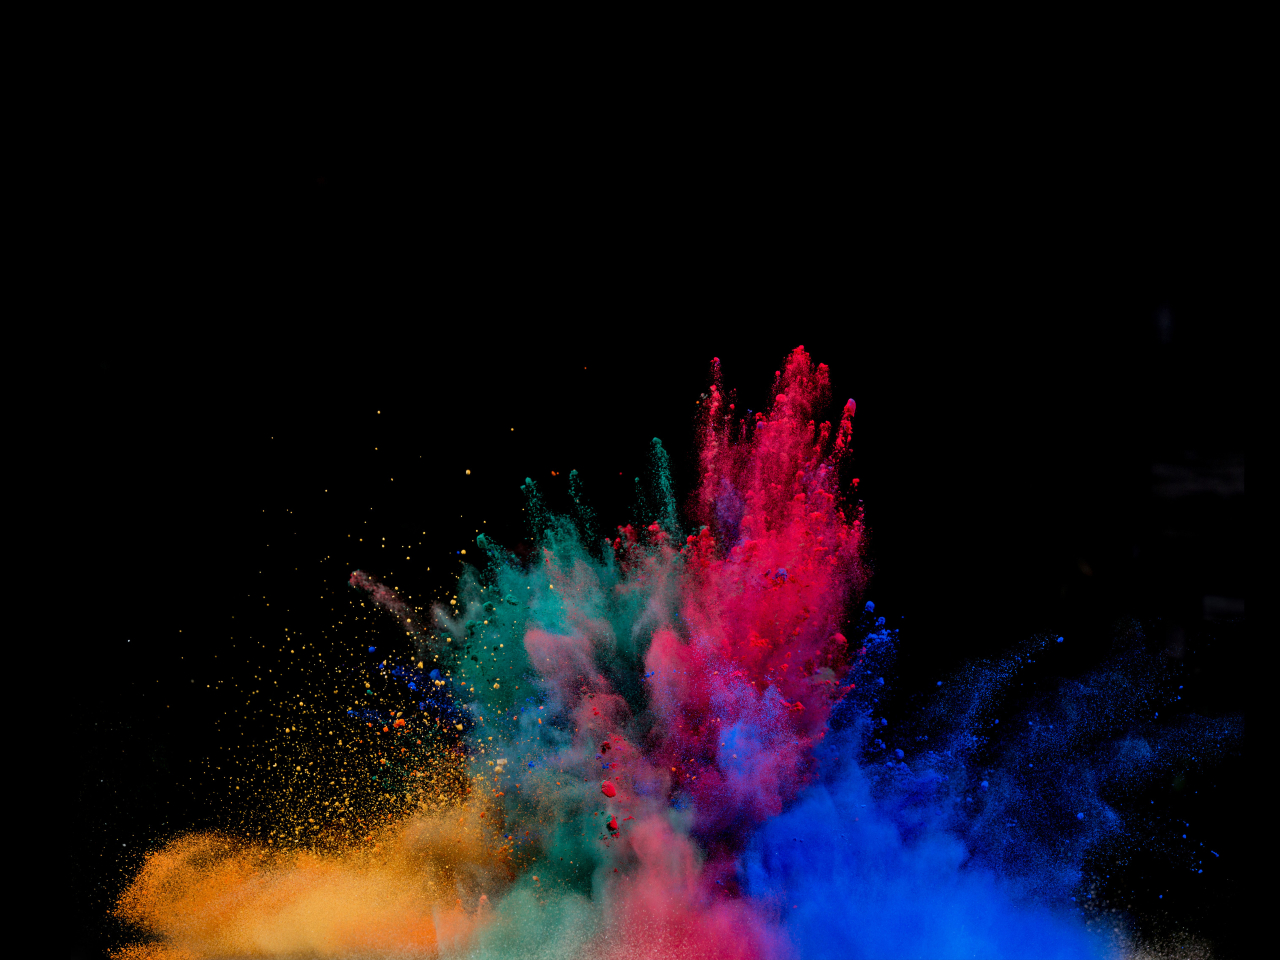 20 Best Samsung Galaxy S7 Edge Hd Wallpapers: Colorful Powder Explosion, HD 4K Wallpaper